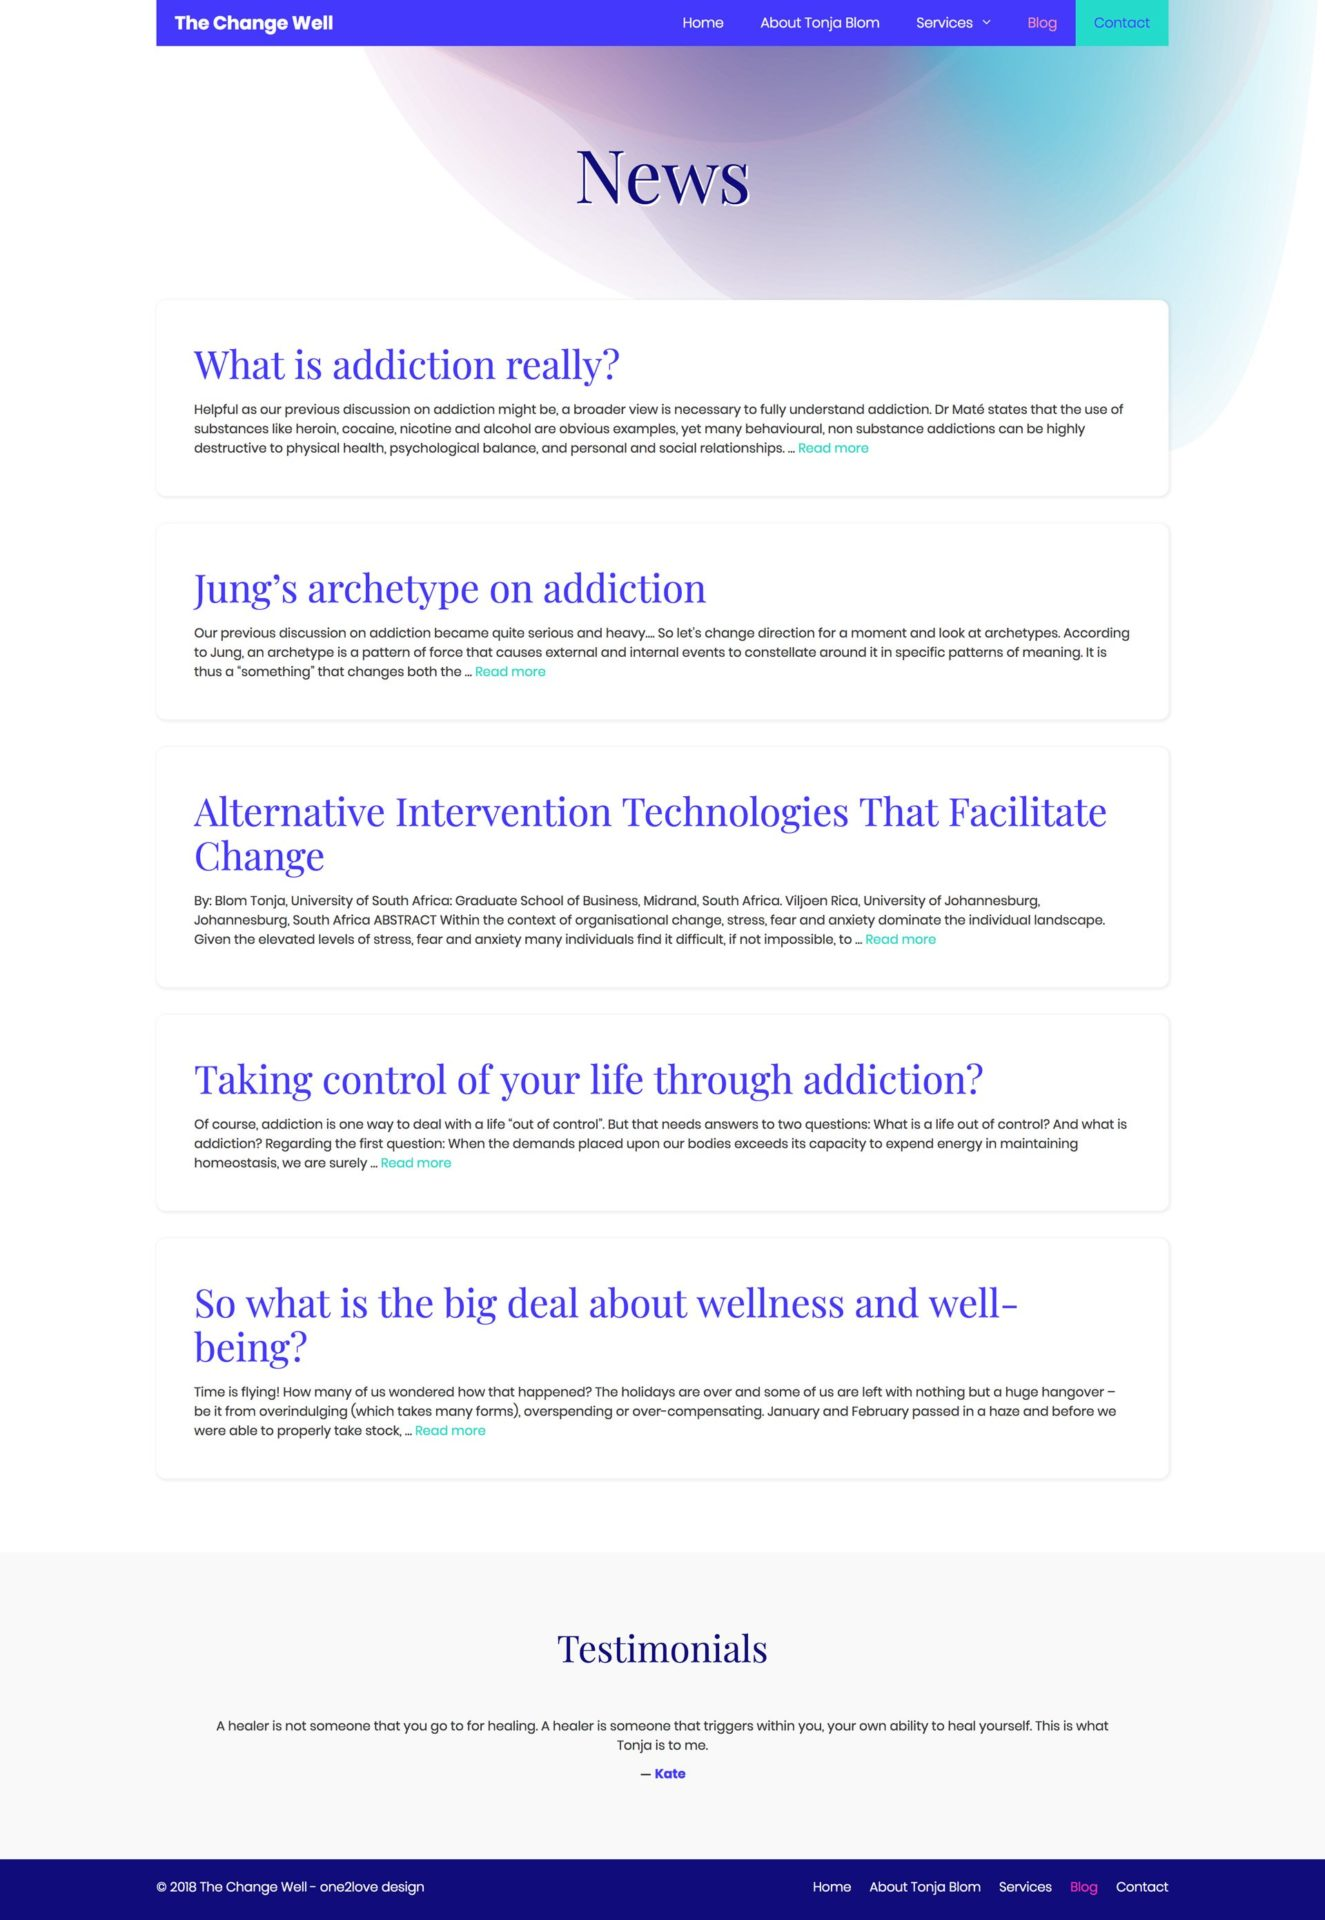 The Change Well Blog Recent News